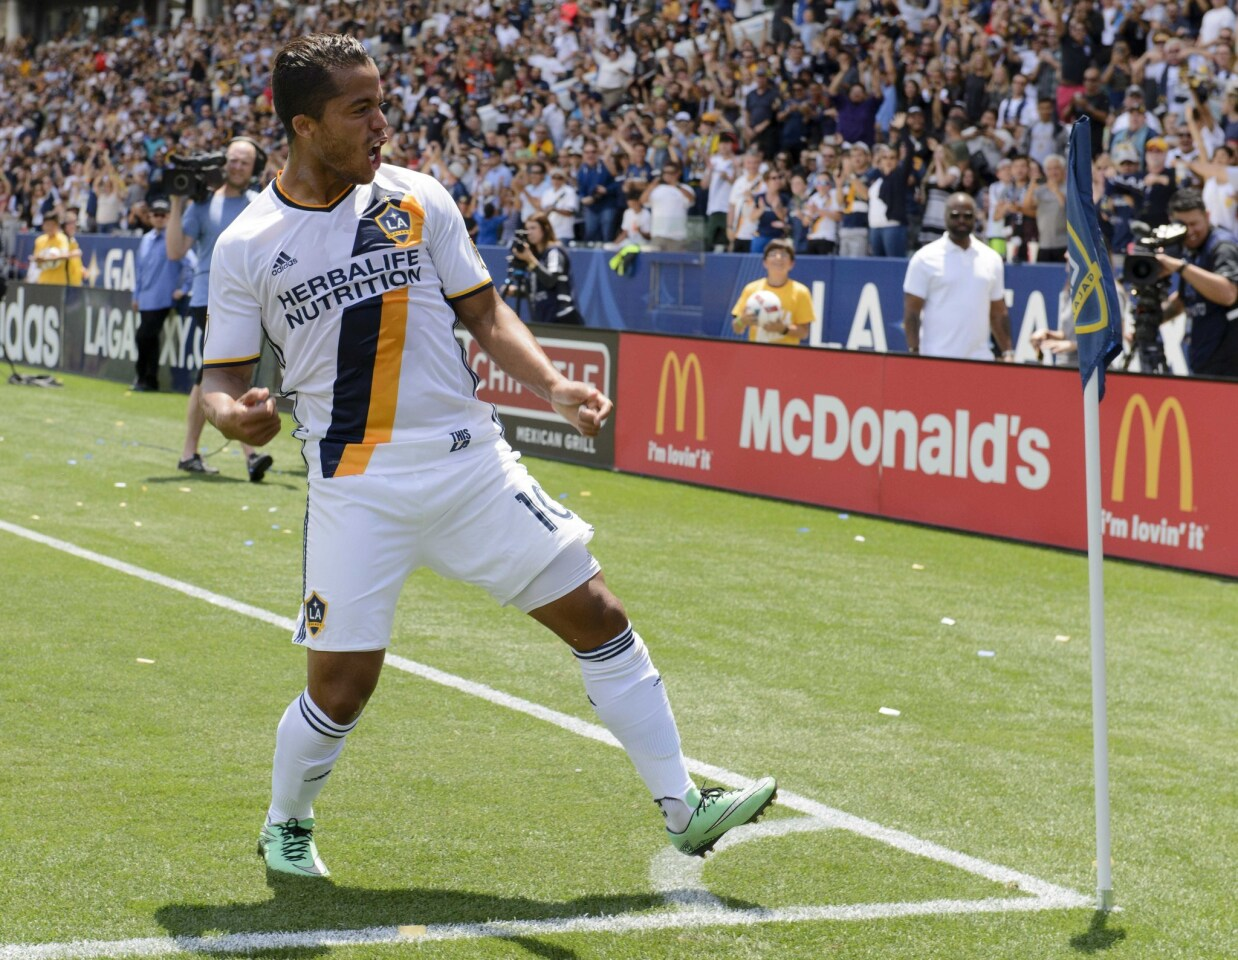 May 8, 2016; Carson, CA, USA; LA Galaxy forward Giovani dos Santos (10) celebrates after scoring a goal against the New England Revolution during the first half at StubHub Center. Mandatory Credit: Kelvin Kuo-USA TODAY Sports ** Usable by SD ONLY **